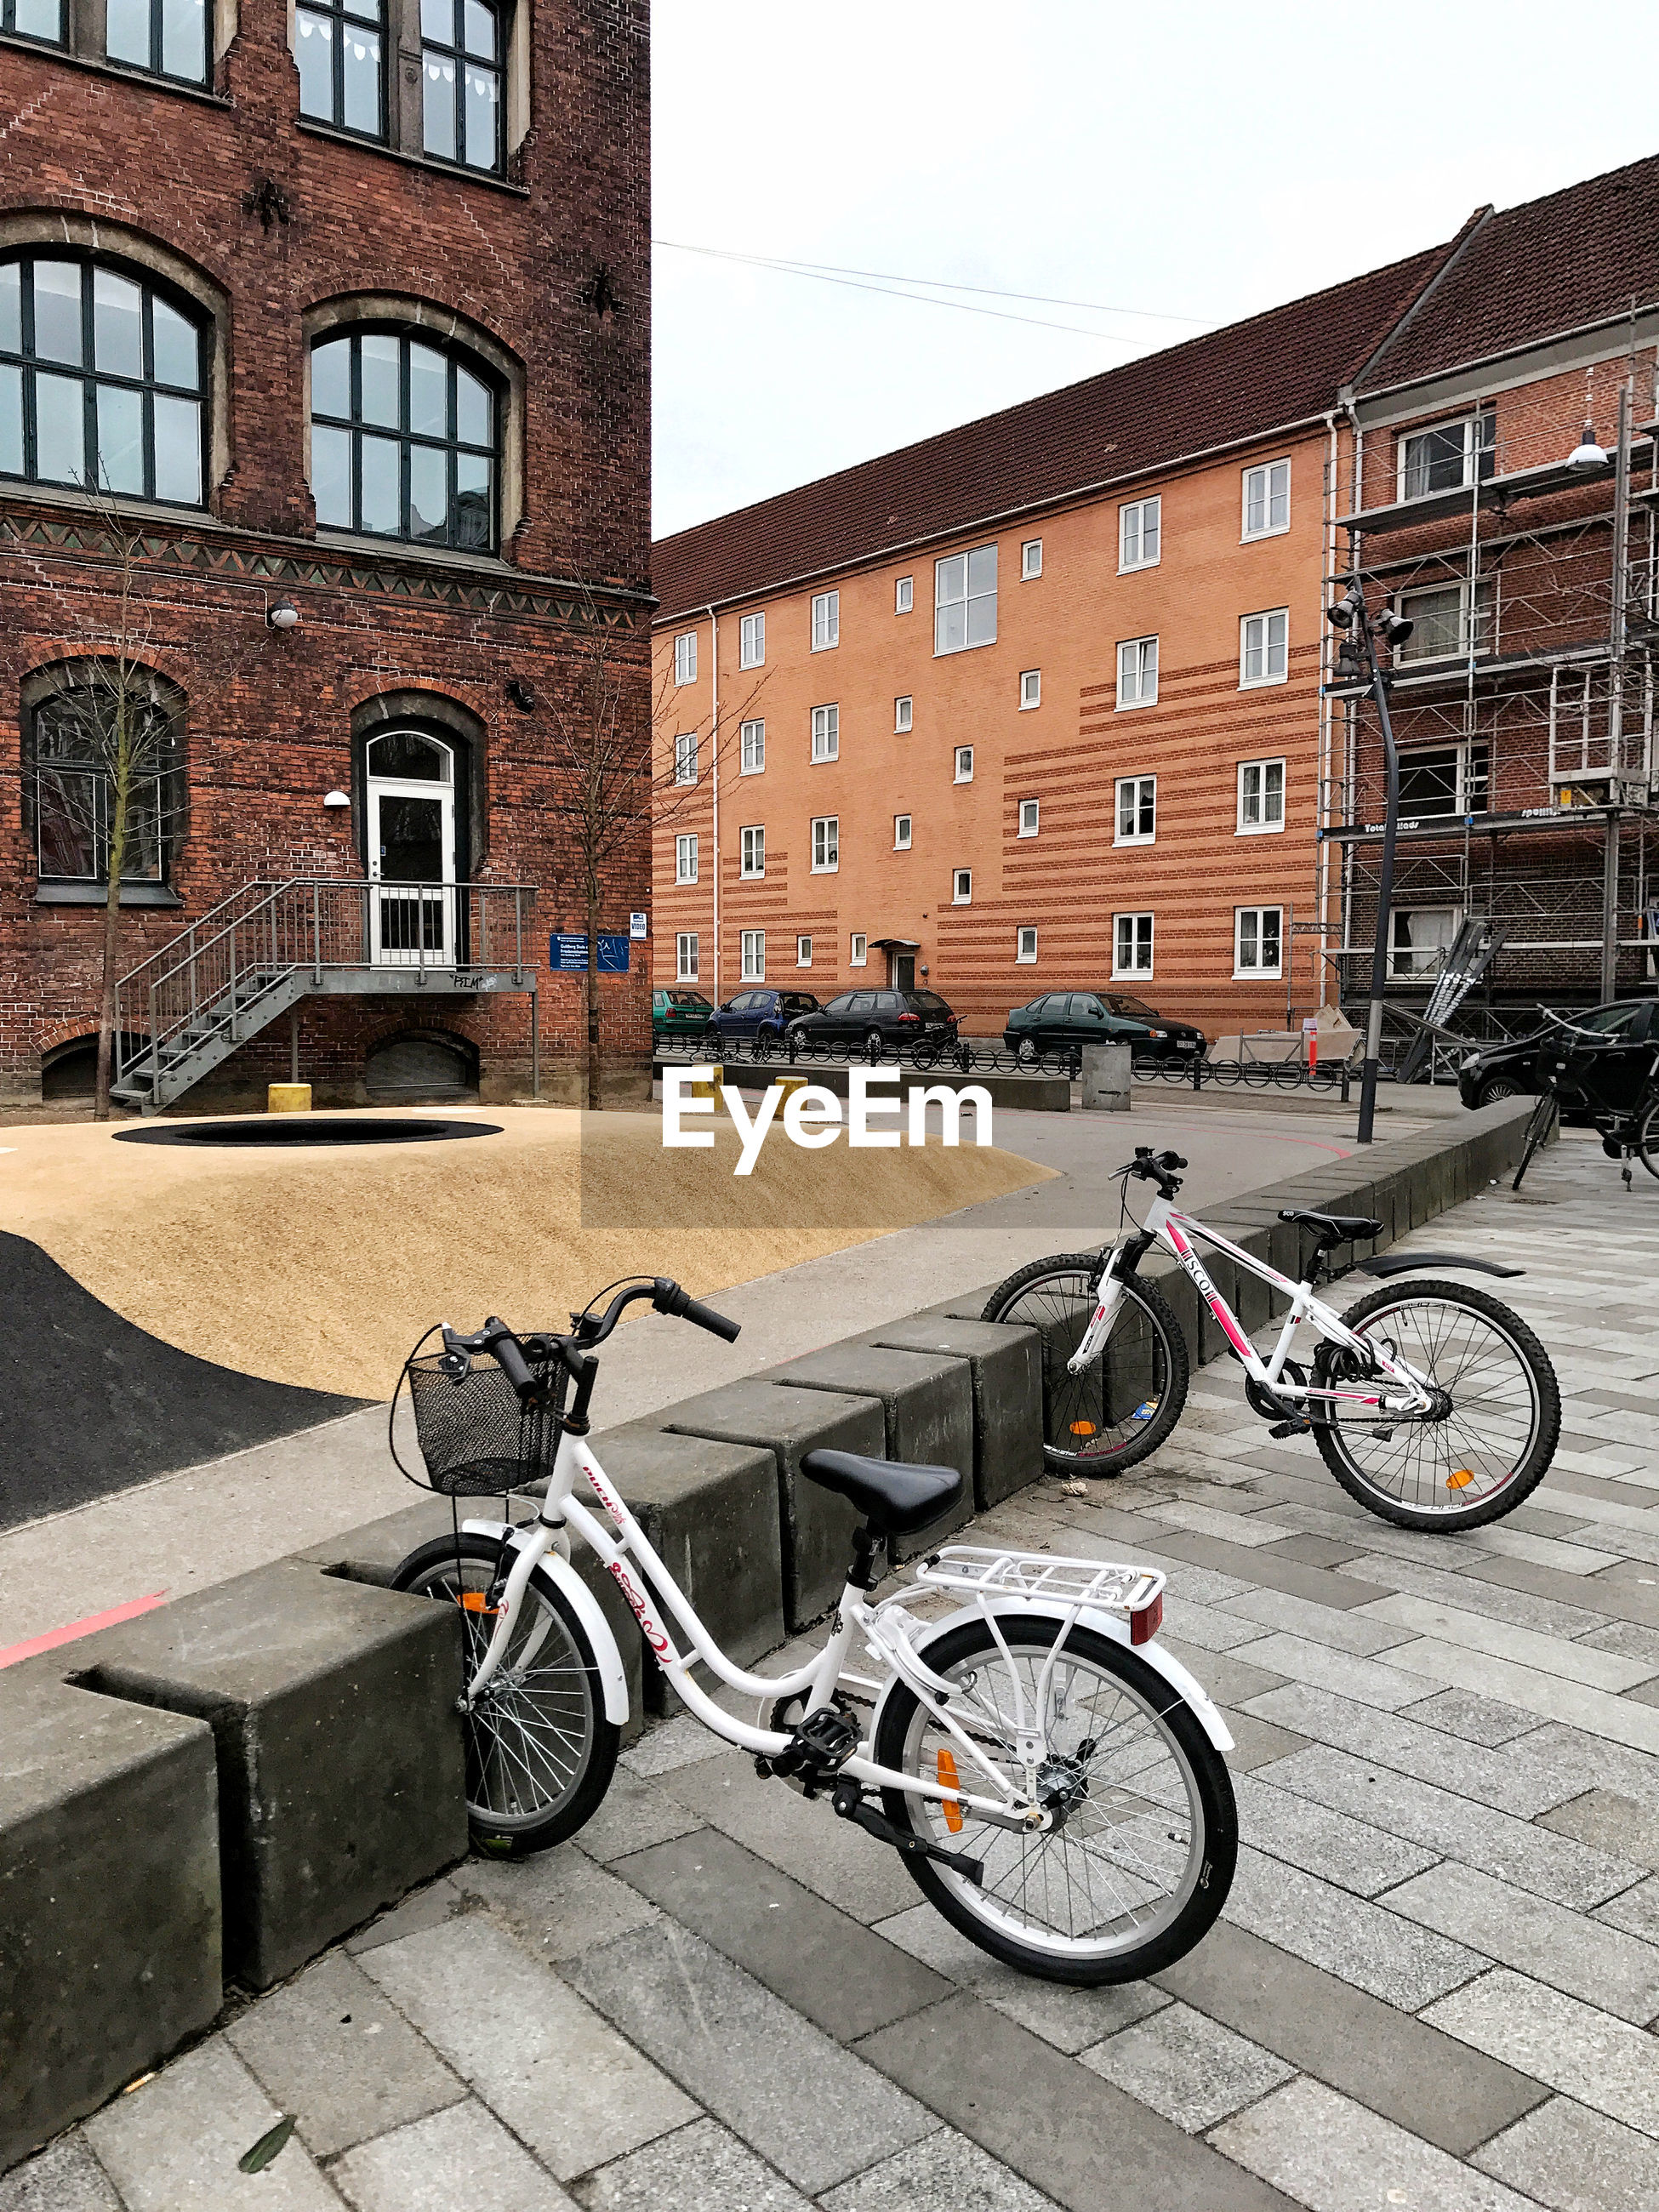 BICYCLES PARKED ON FOOTPATH BY BUILDINGS